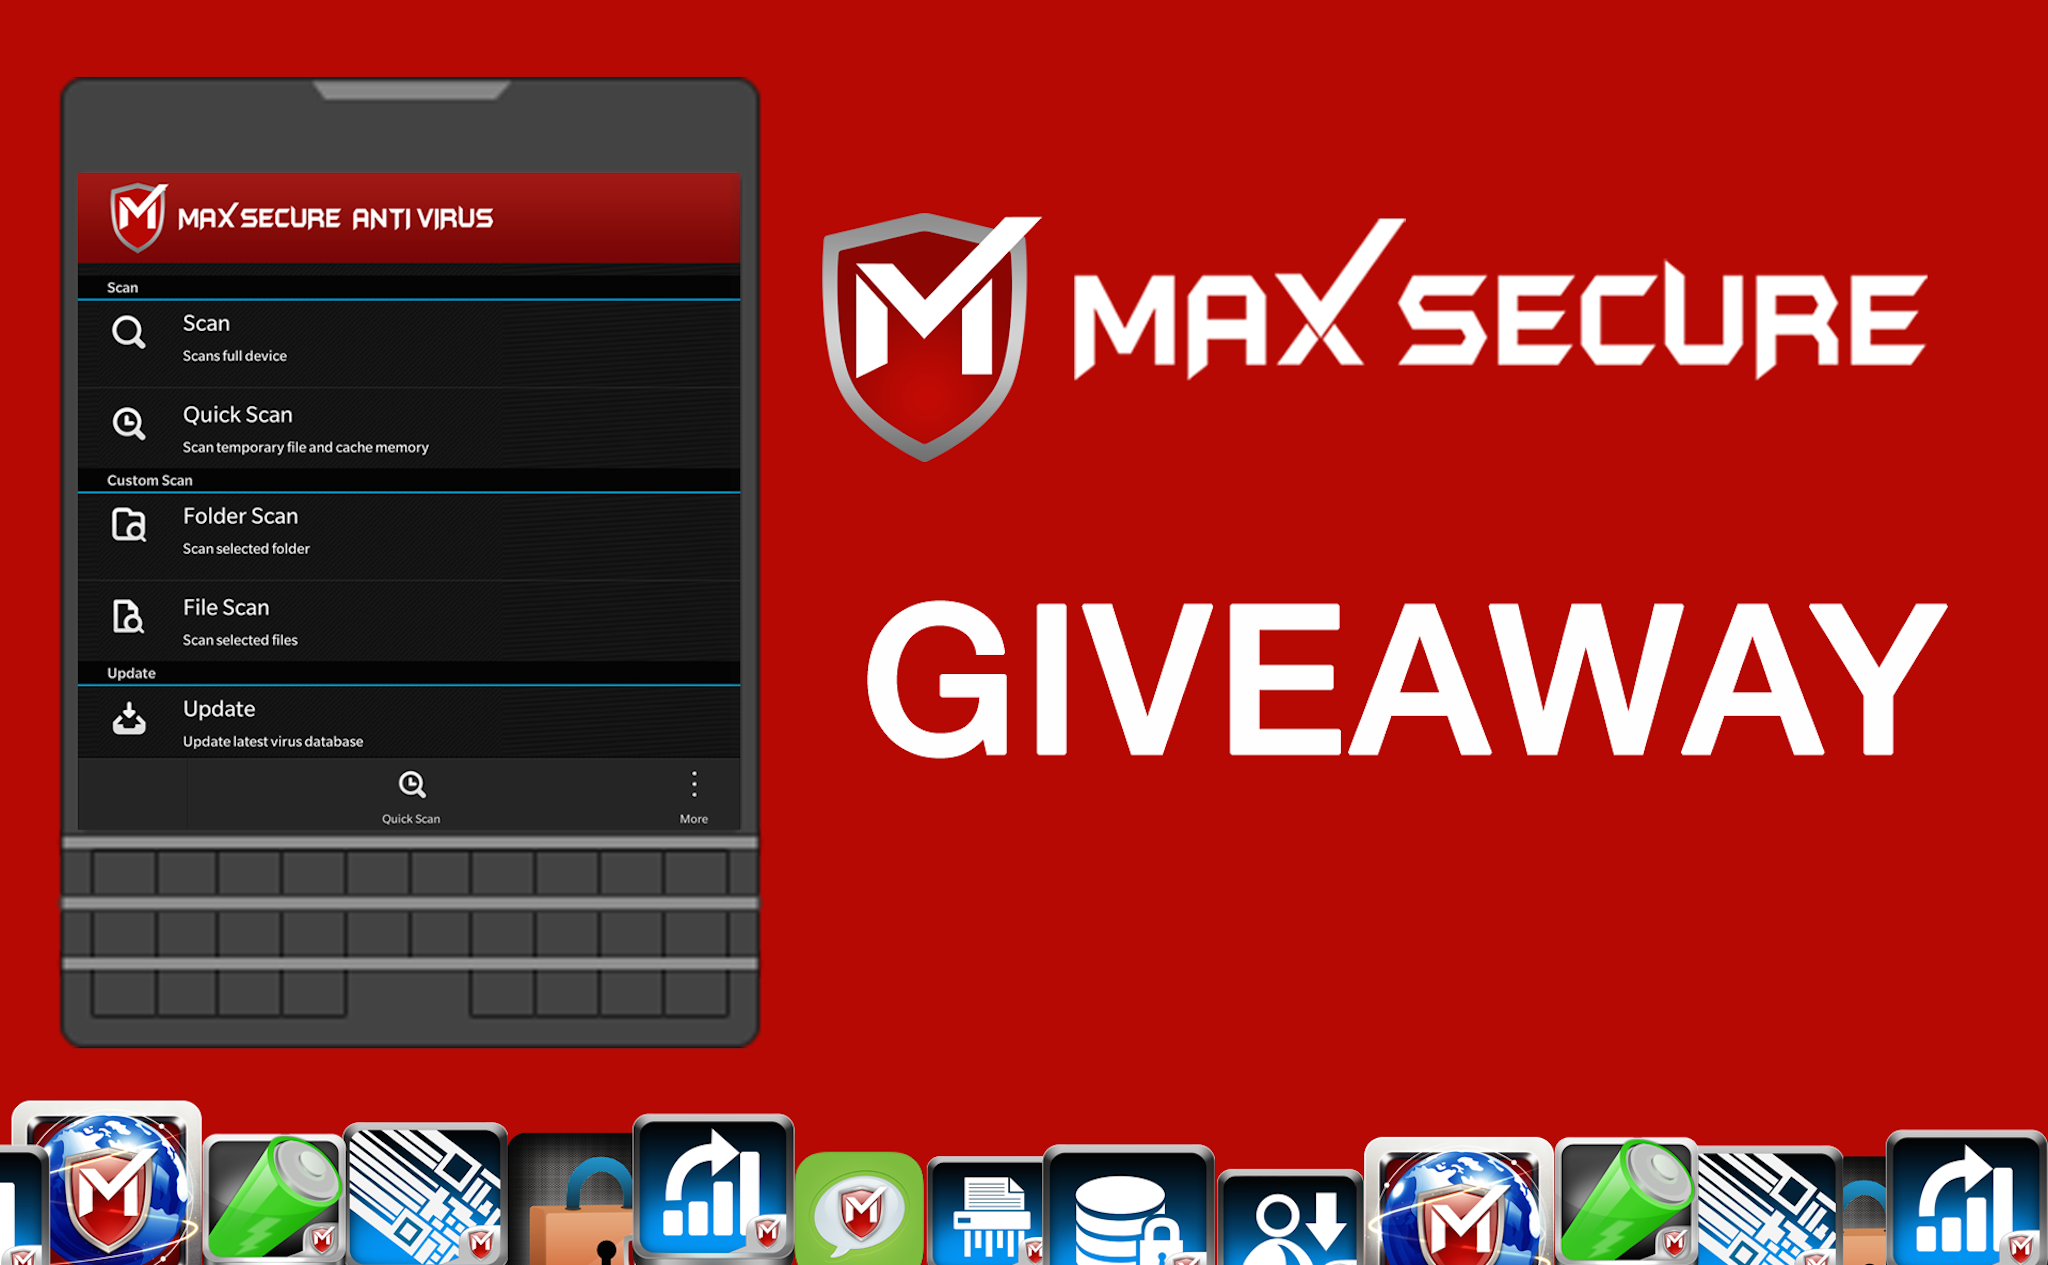 Max Secure